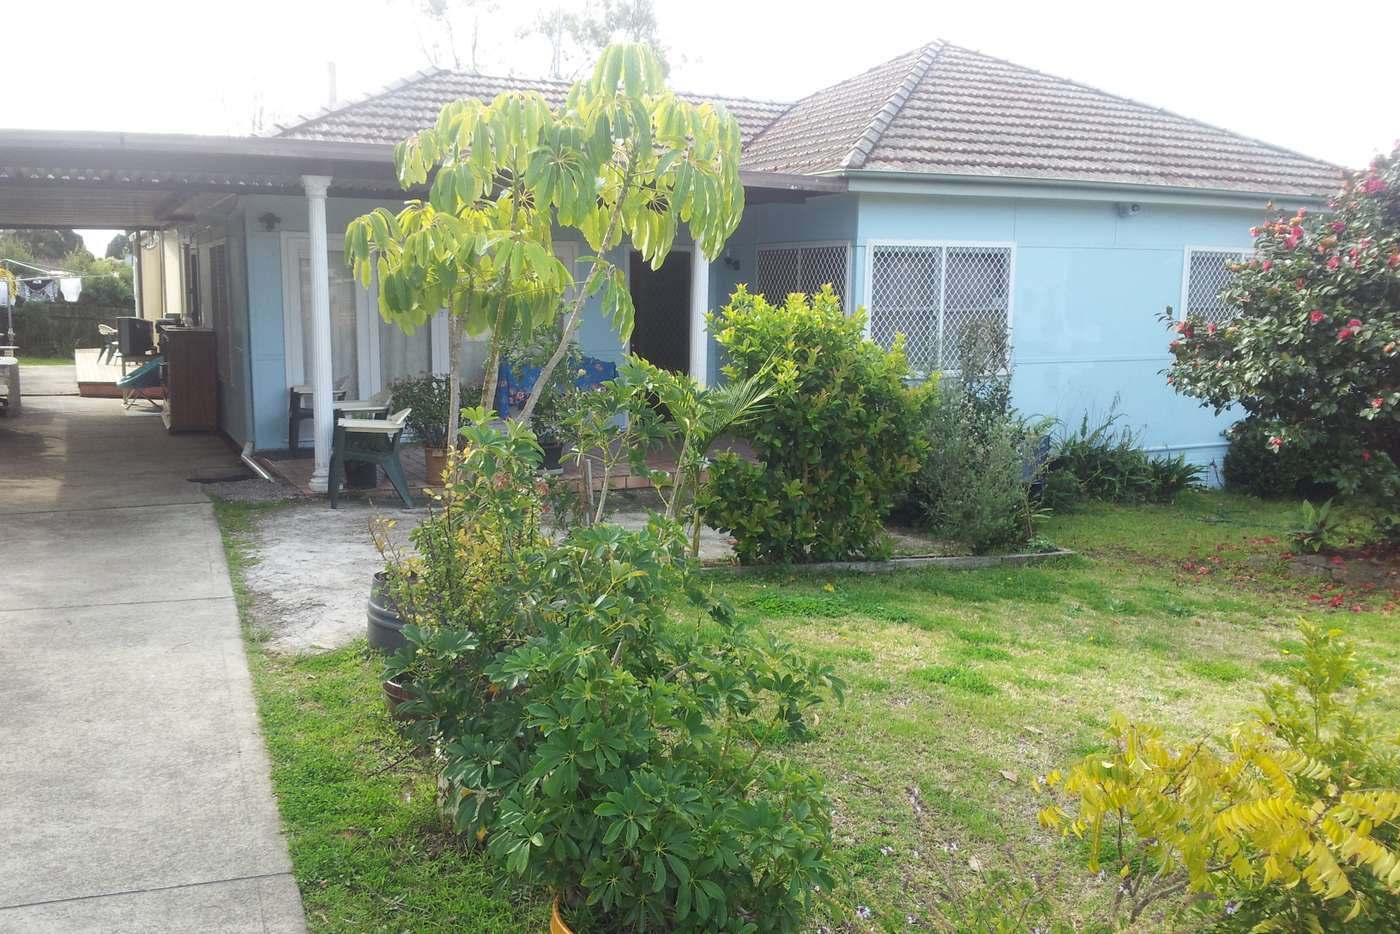 Main view of Homely house listing, 9/141 Lindesay Street, Campbelltown NSW 2560